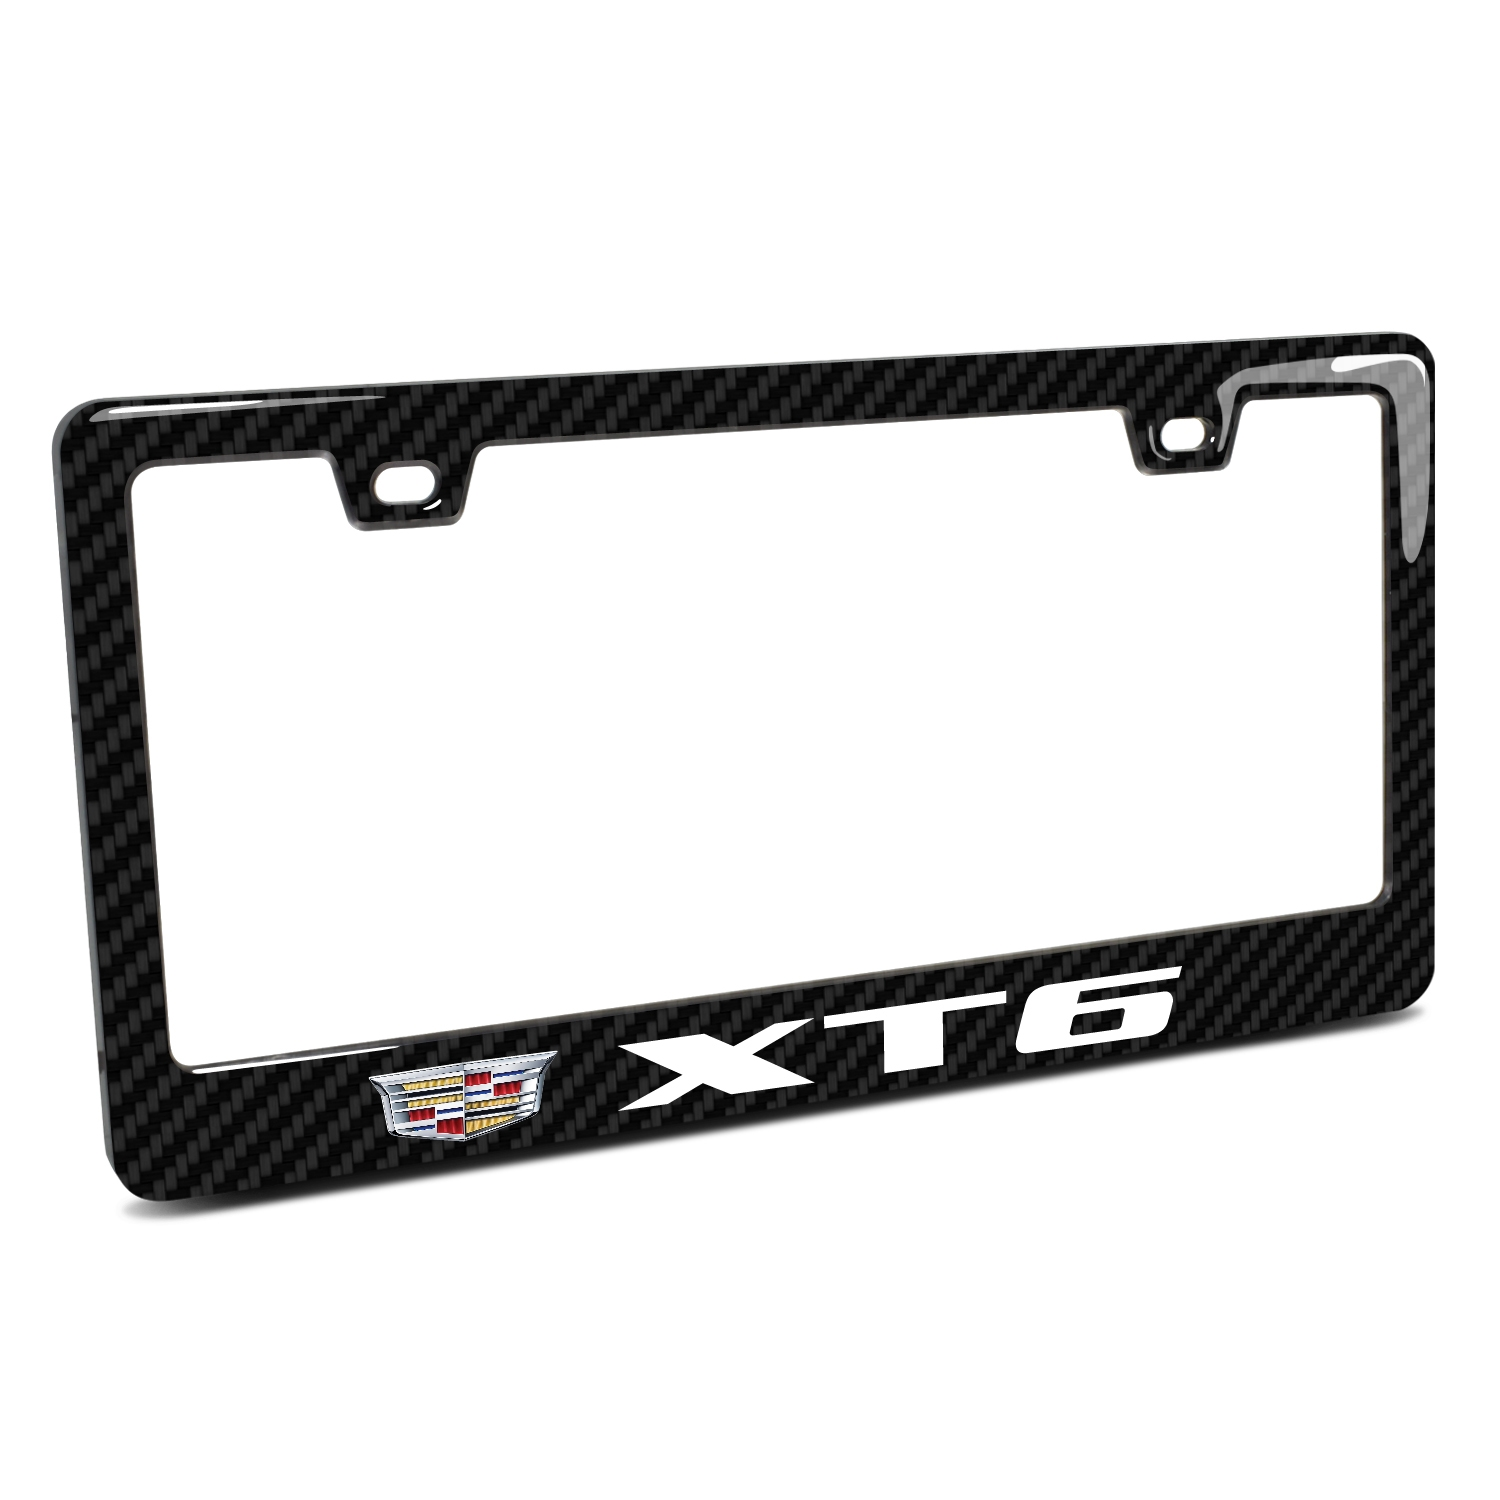 Cadillac XT6 in 3D on Real 3K Carbon Fiber Finish ABS Plastic License Plate Frame